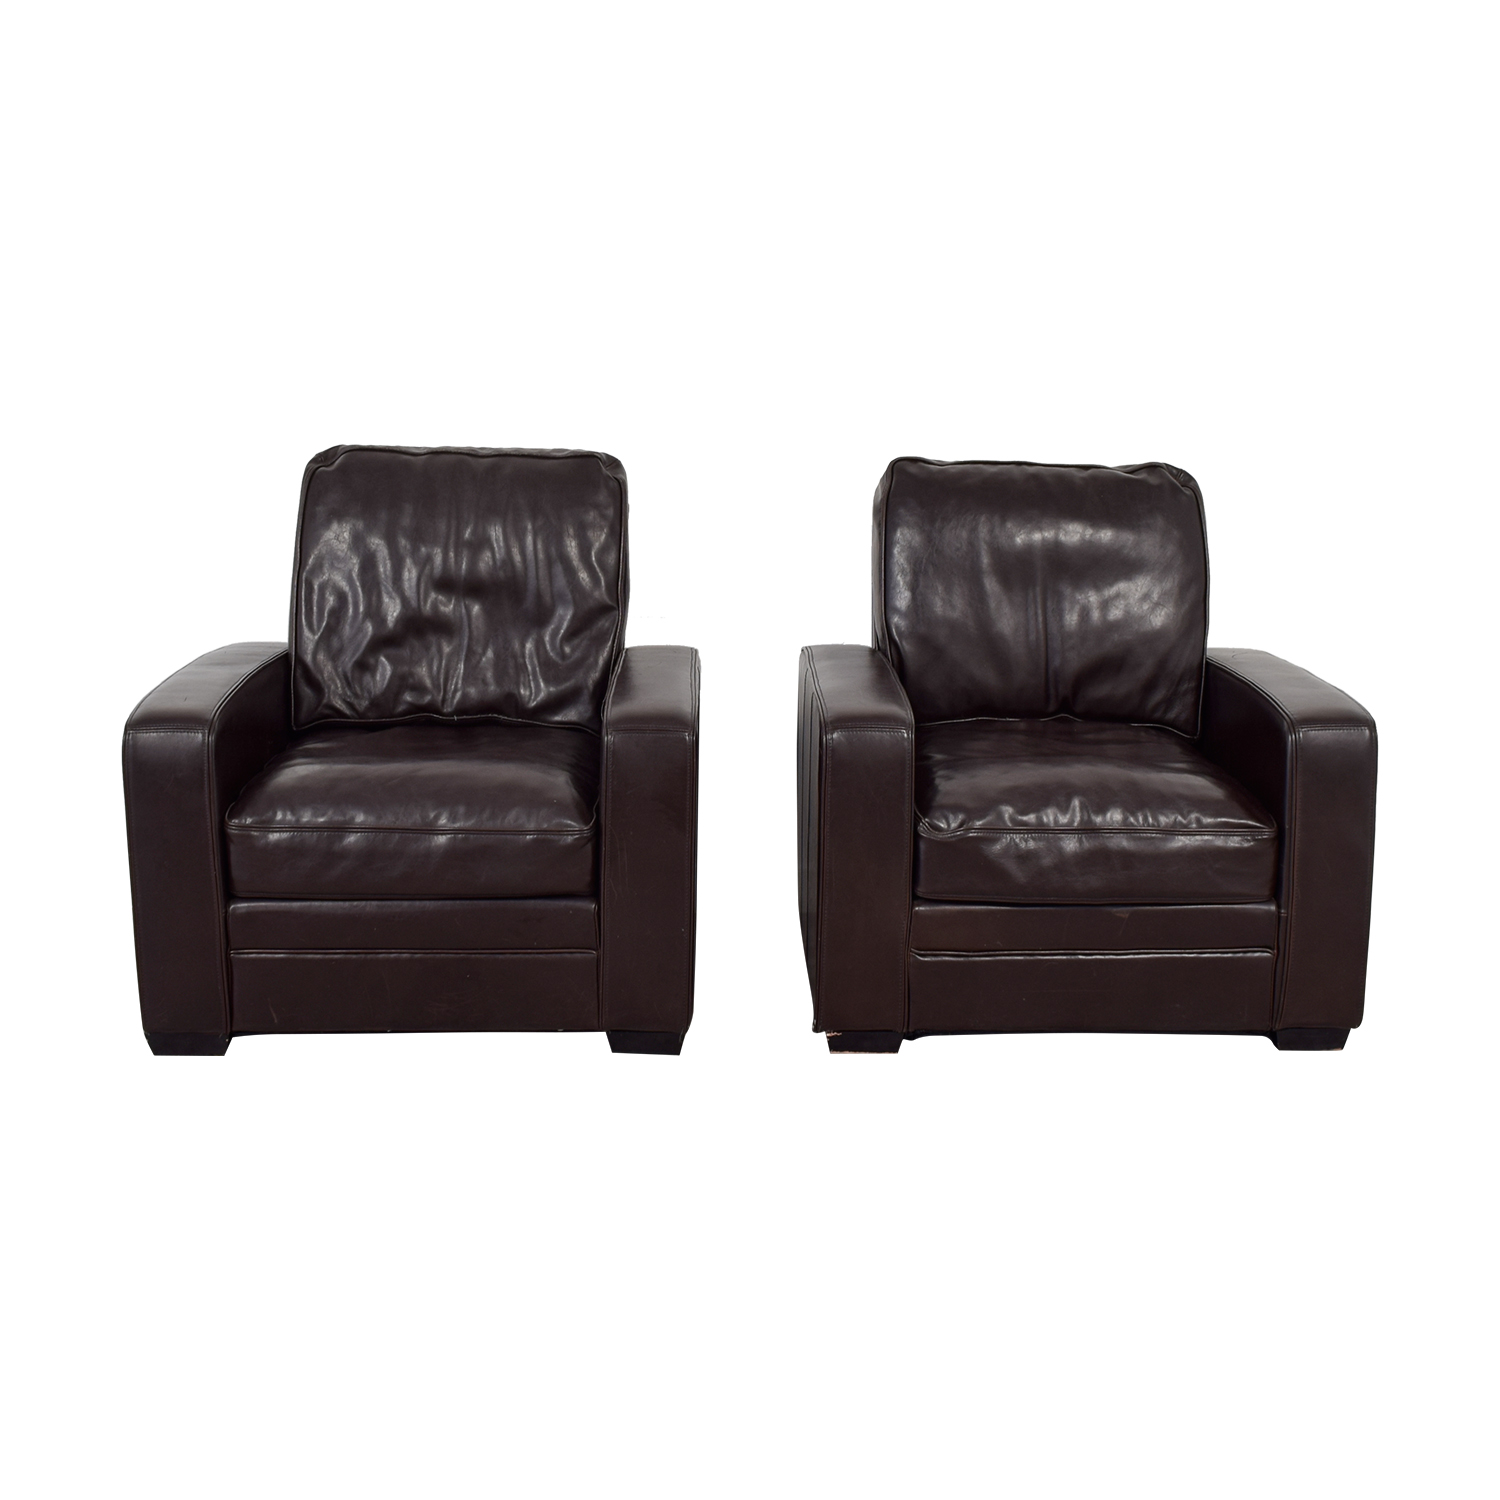 90% OFF - Overstock Overstock Brown Leather Accent Chairs / Chairs